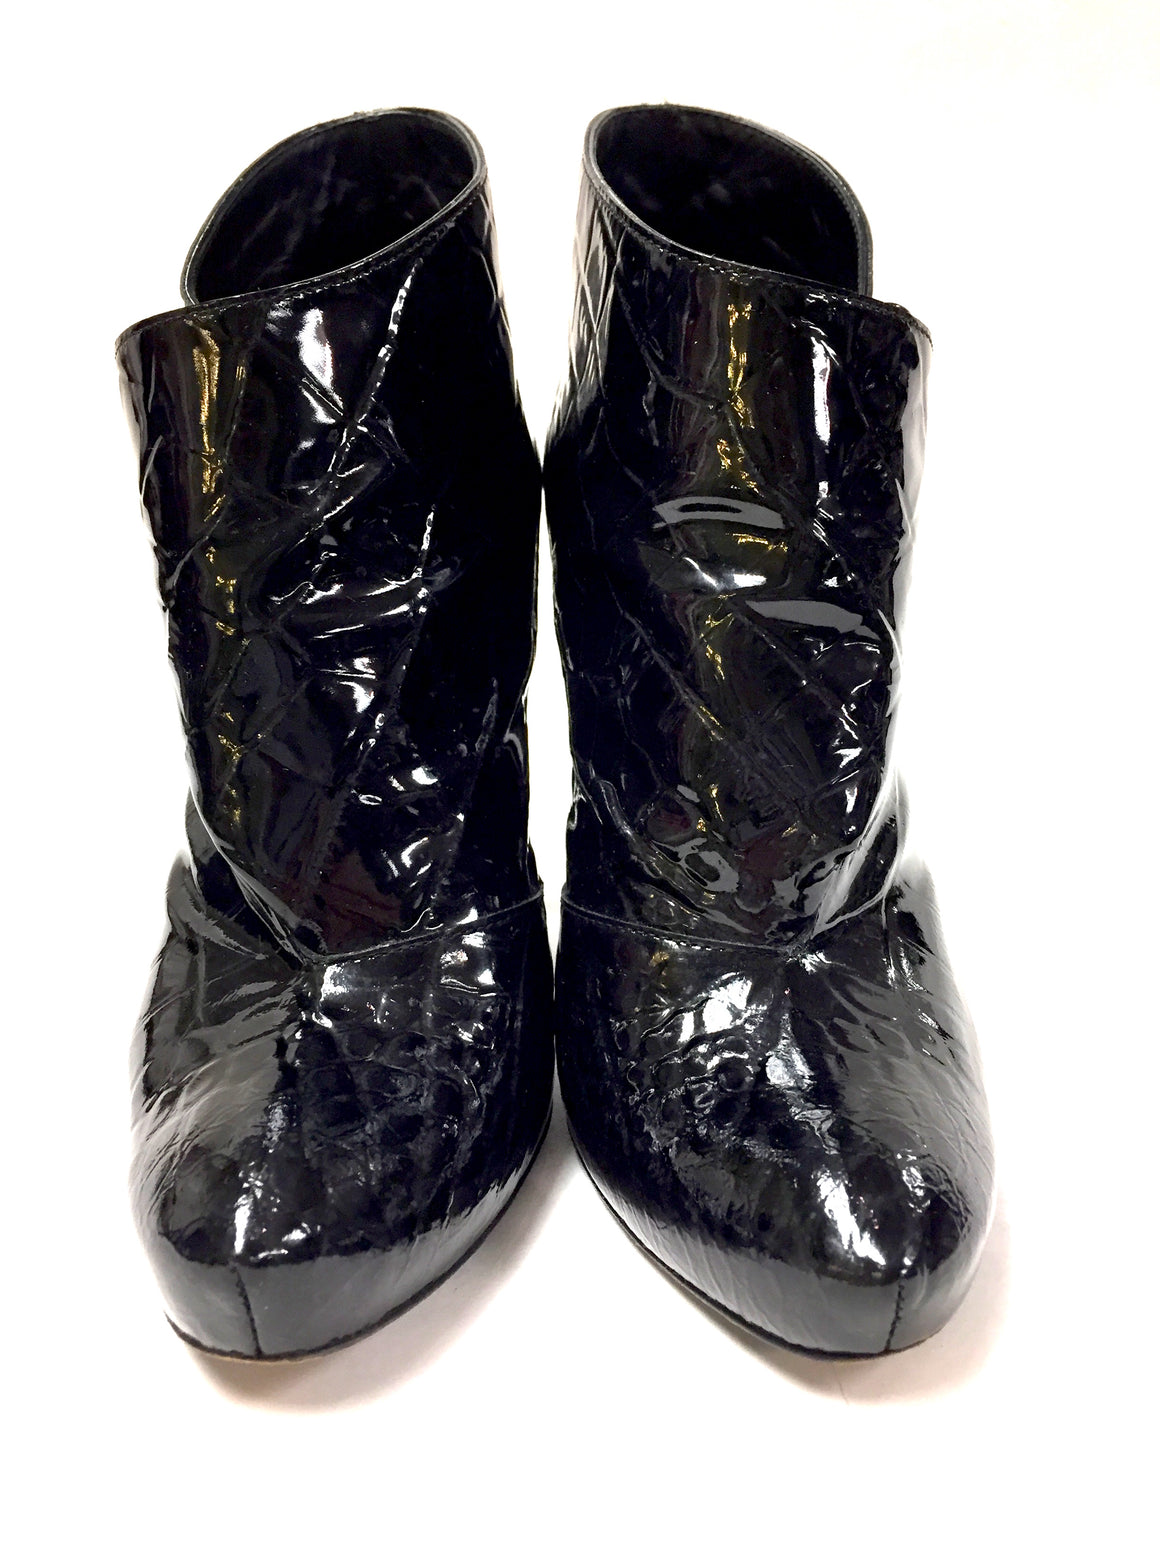 LOUIS VUITTON  Black Reptile-Patterned Patent Leather DELFT OPHELIA Ankle Booties Shoes Size: 38 / 7.5